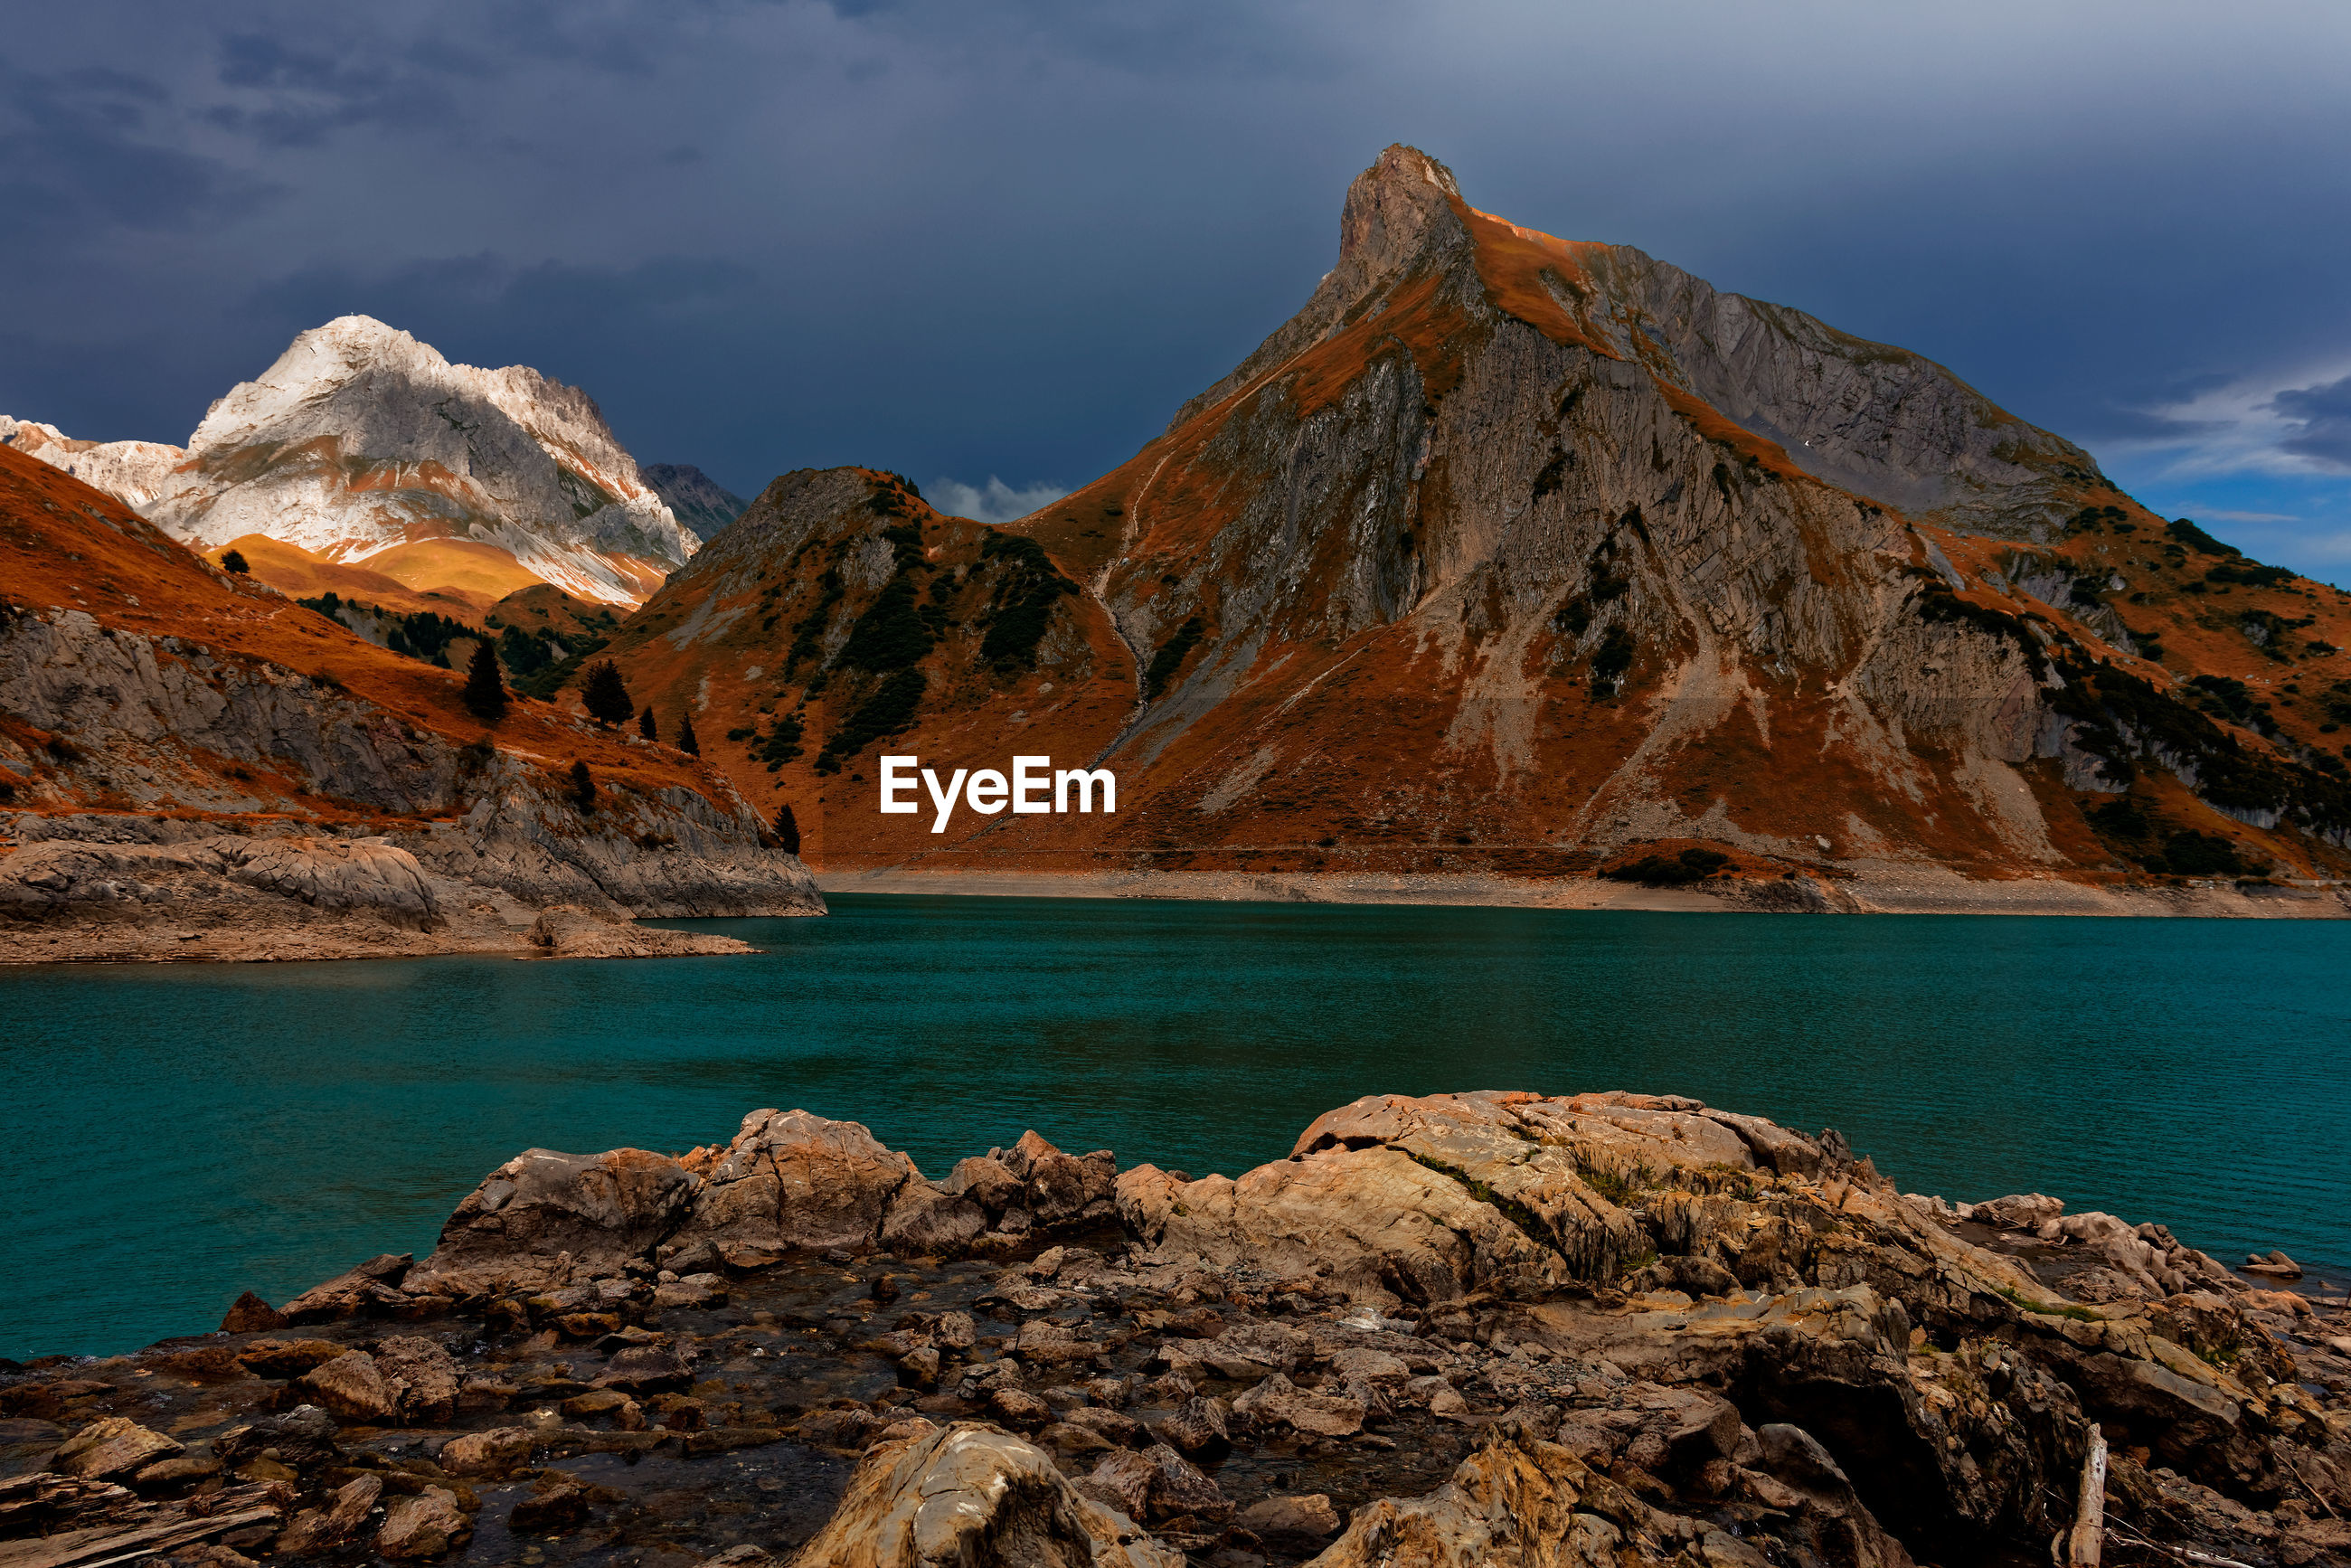 SCENIC VIEW OF ROCKS BY LAKE AGAINST SKY